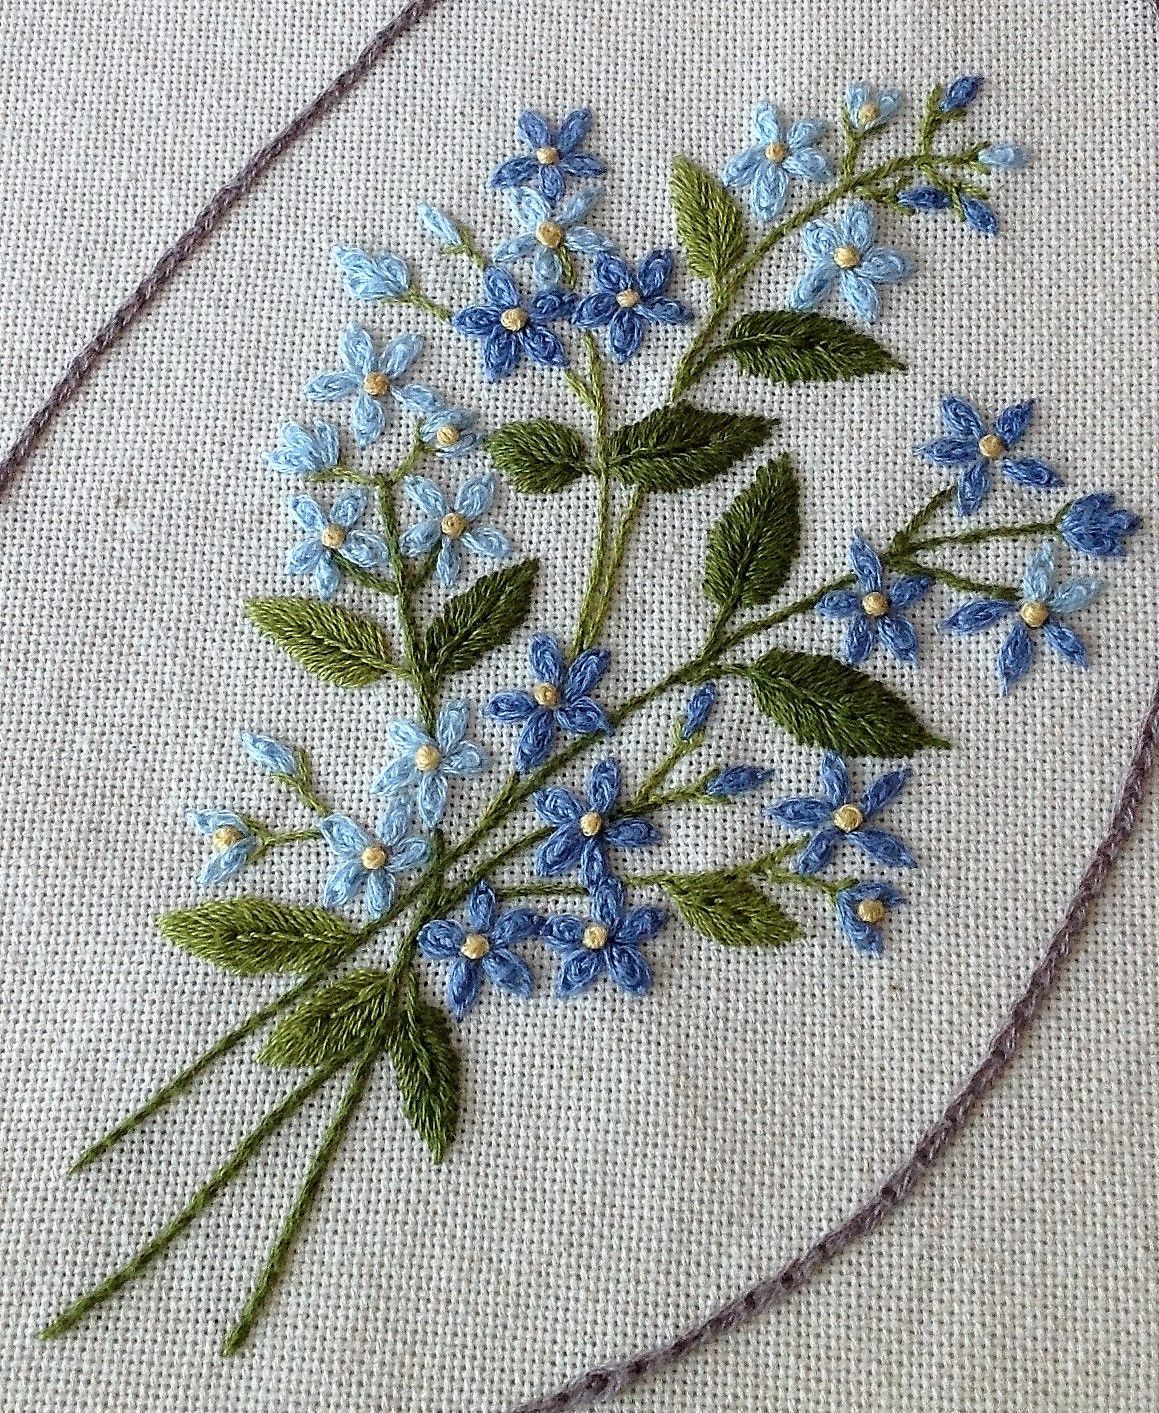 Pin By Christine Carter On Embroidery